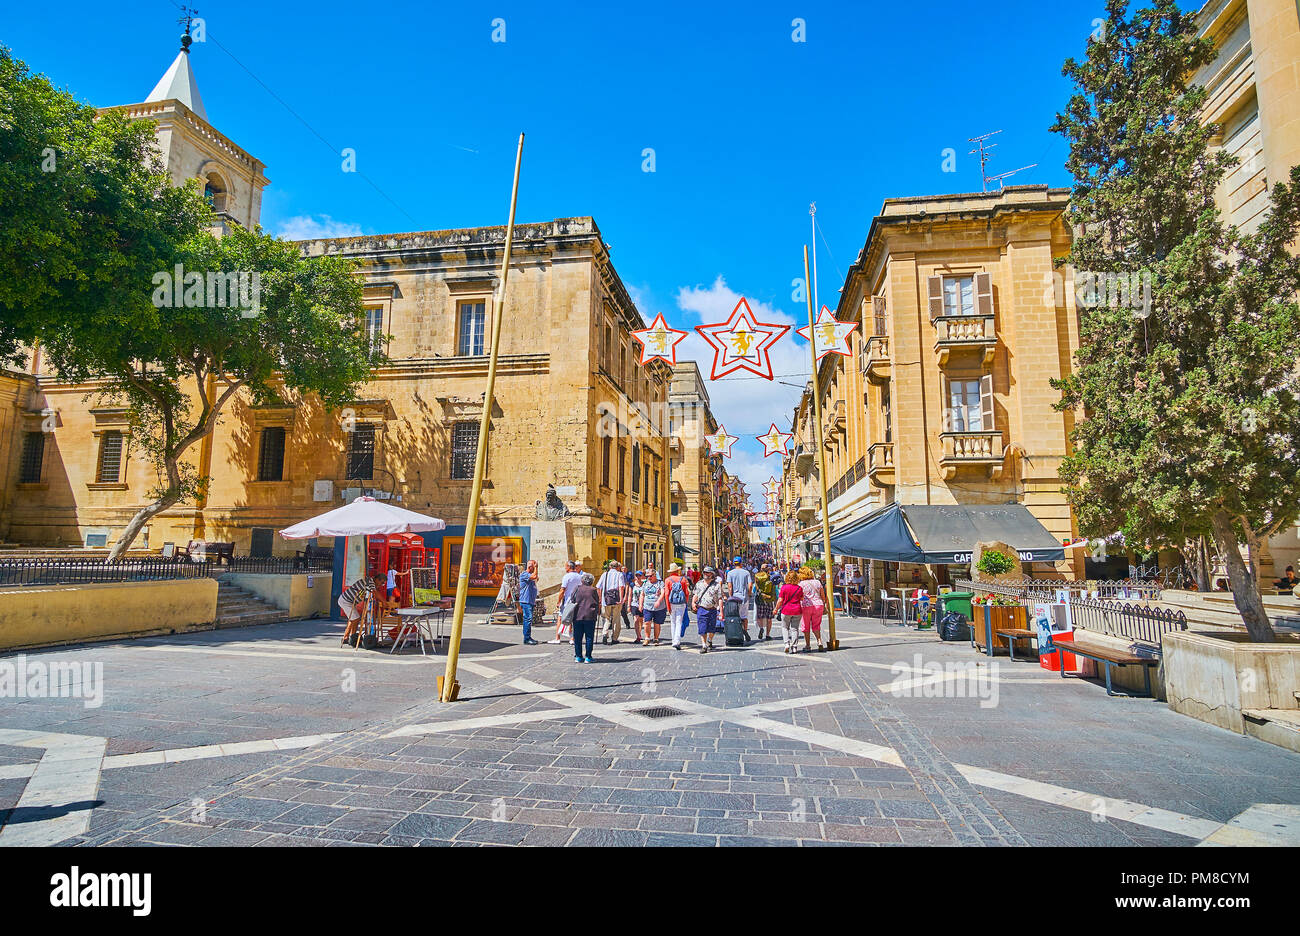 VALLETTA, MALTA - JUNE 17, 2018:  People walk along the medieval mansions and outdoor cafes of Republic street, located in heart of old town, on June  - Stock Image